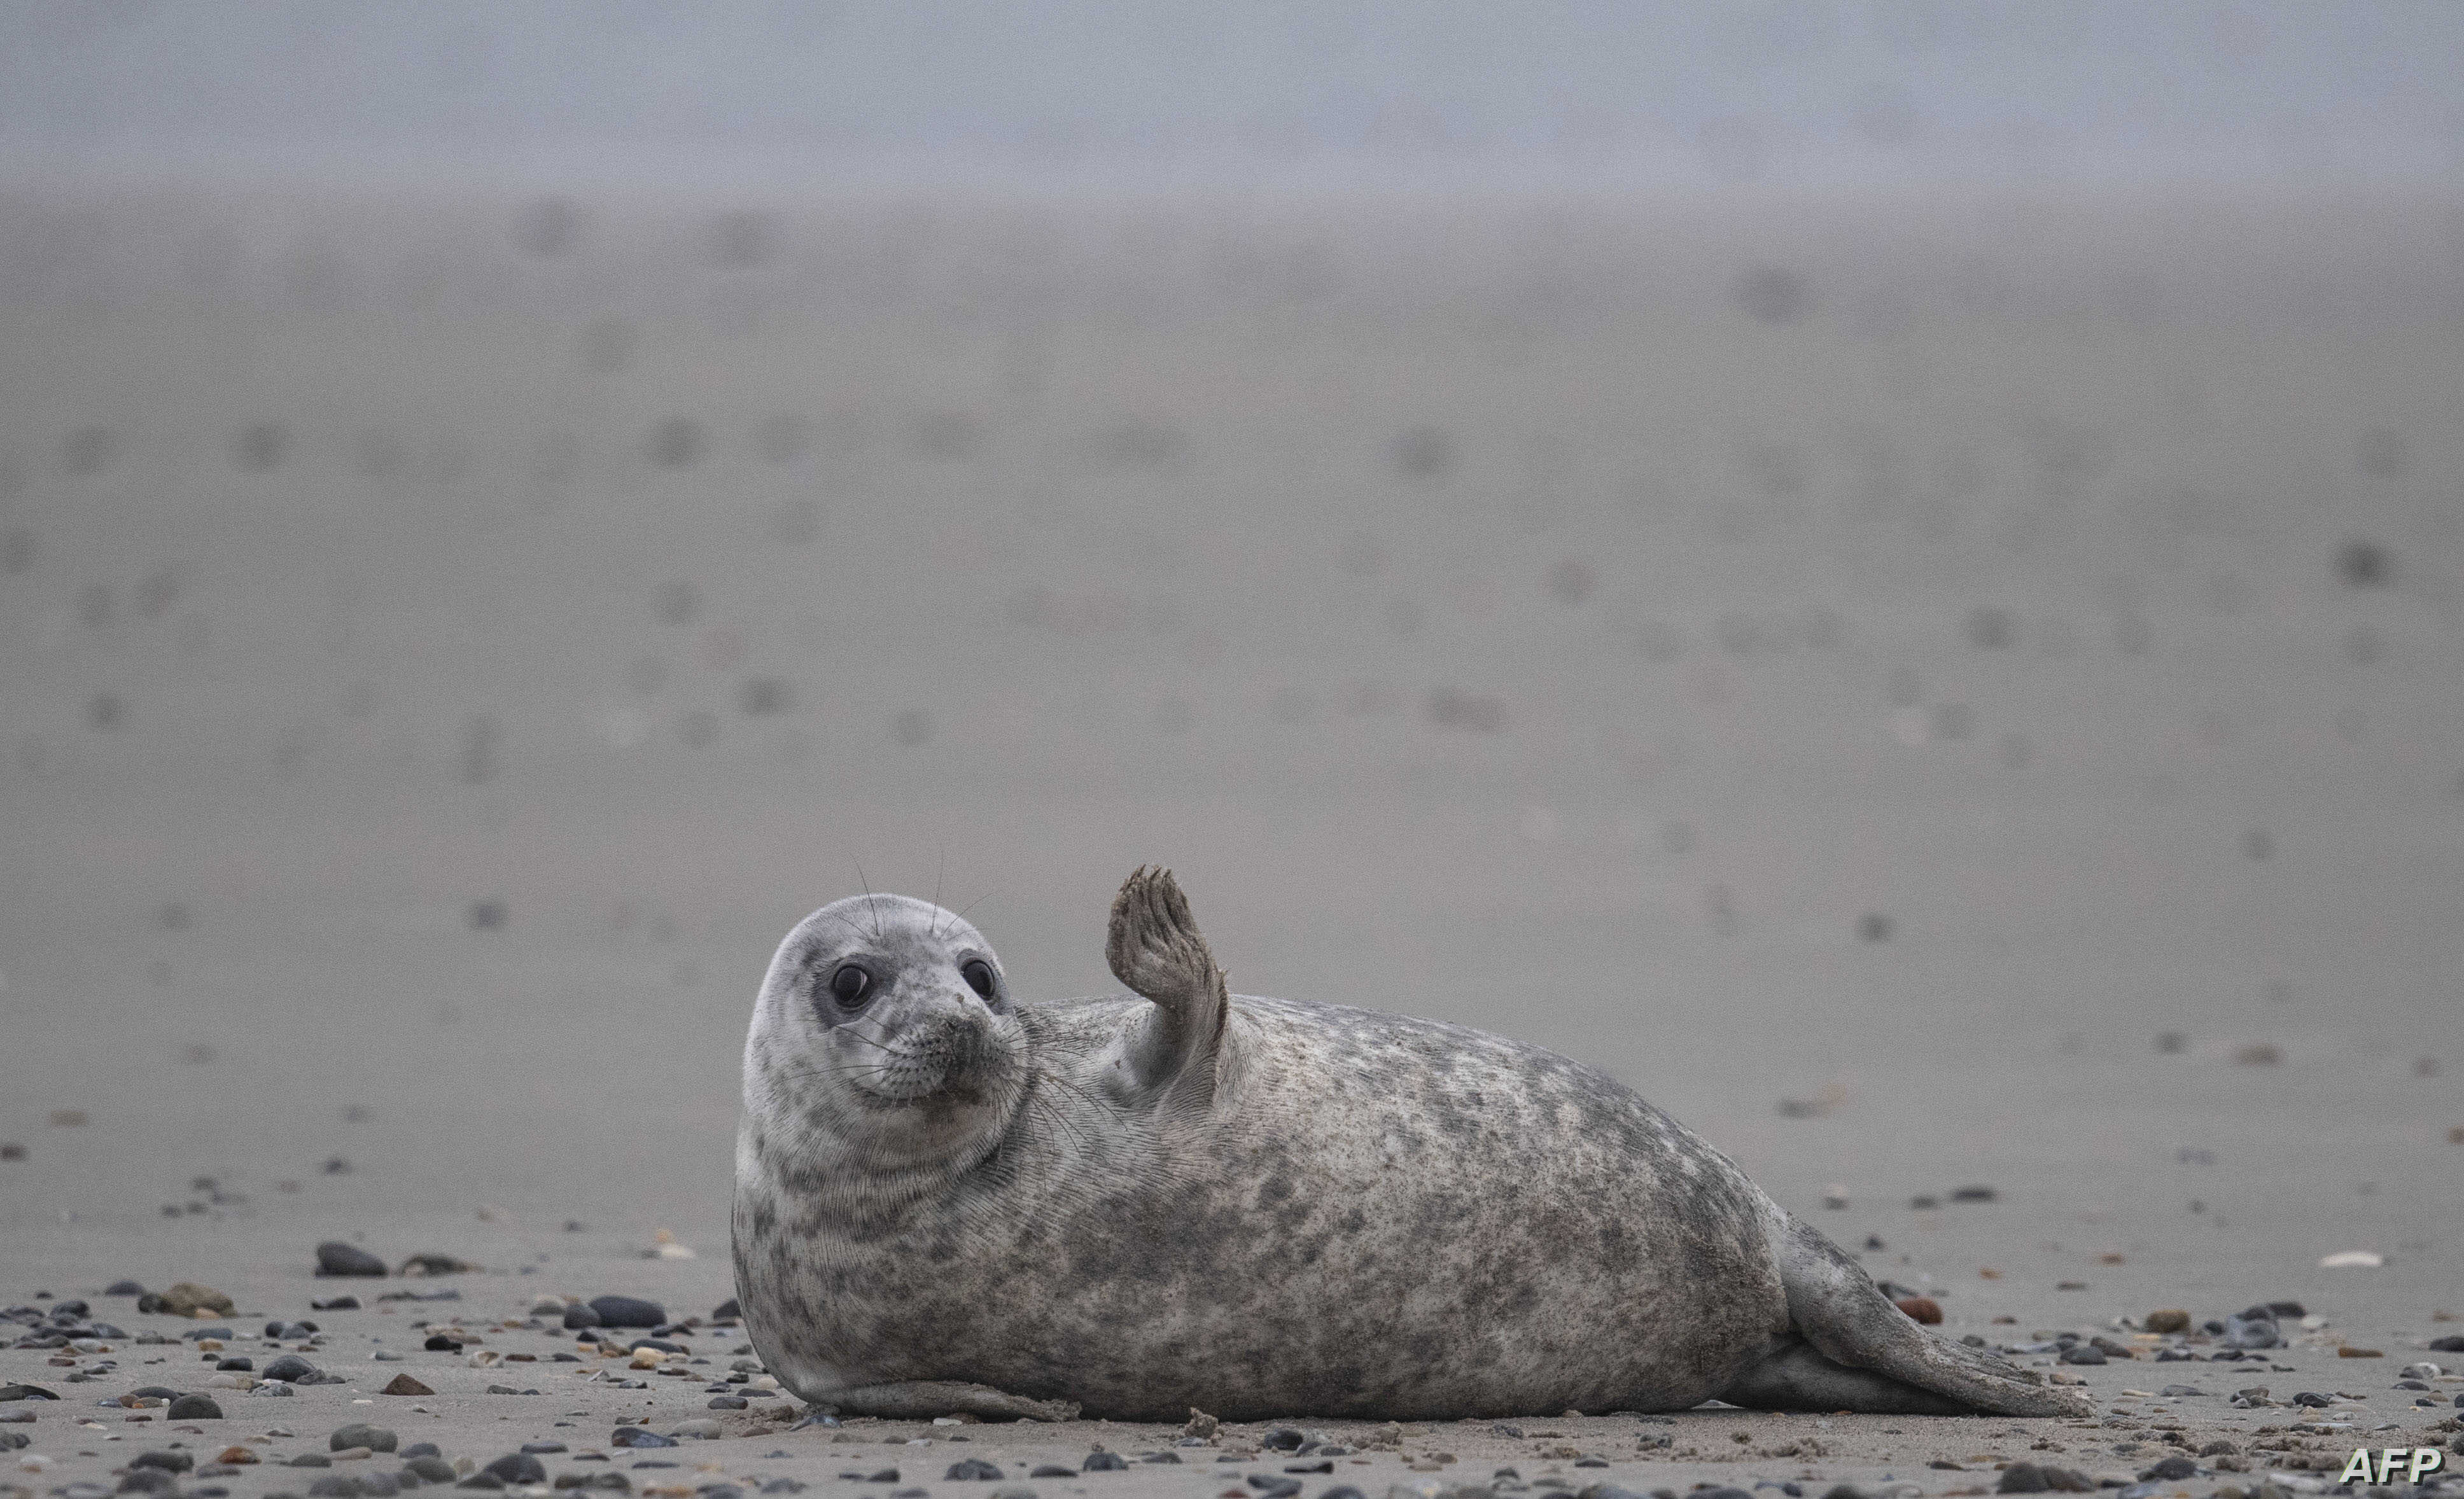 A young grey seal gestures as it lies on a beach on the North Sea island of Helgoland, Germany, Jan. 5, 2020.